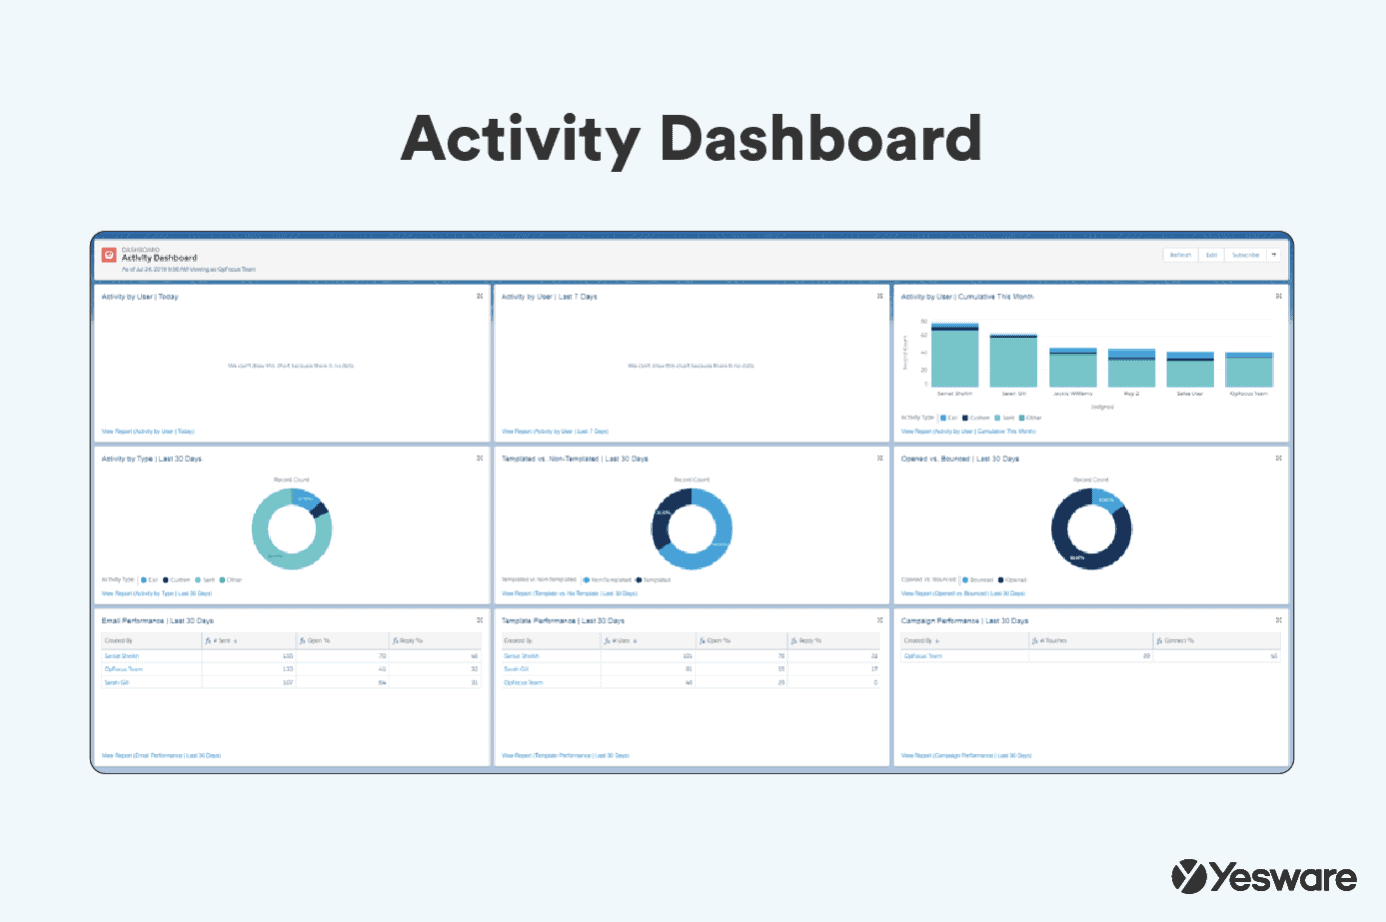 Activity Dashboard